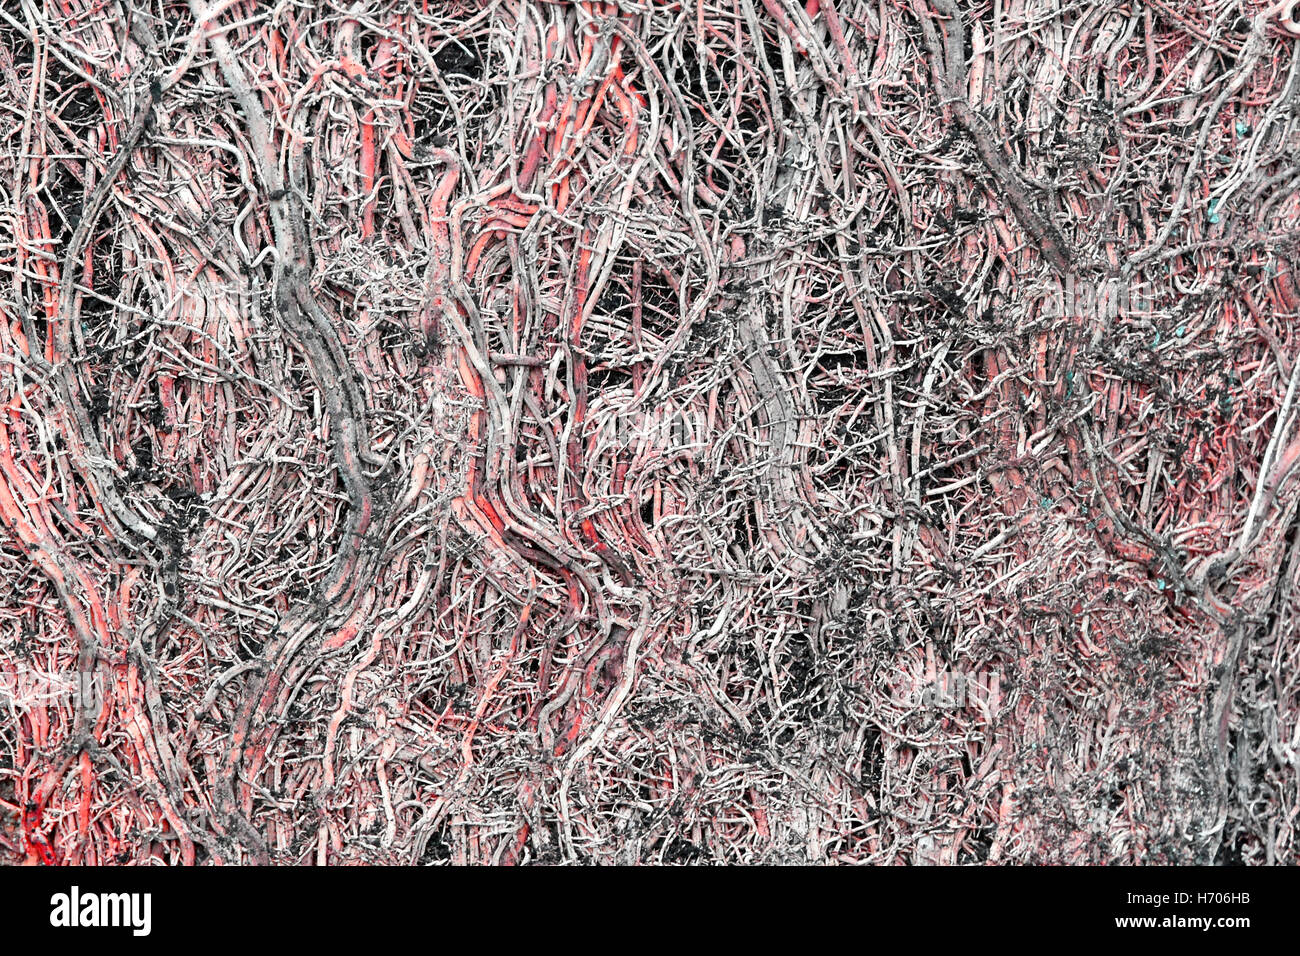 Abstract close up image of tight cluster of roots of a pot bound Bamboo plant after pot removal concept idea of - Stock Image